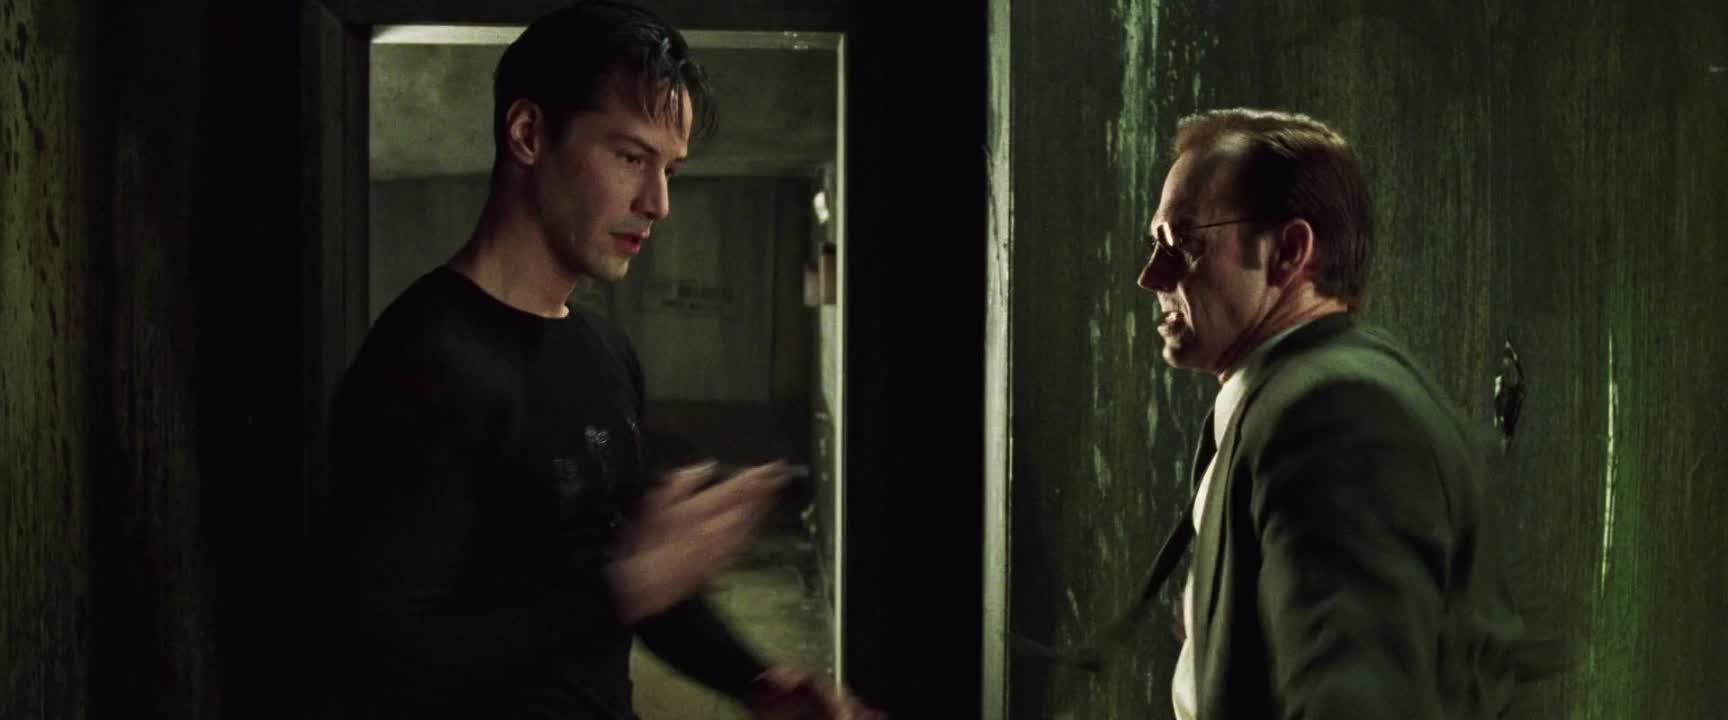 agent, agent smith, fight, keanu reeves, the matrix, The Matrix - Easy fight GIFs